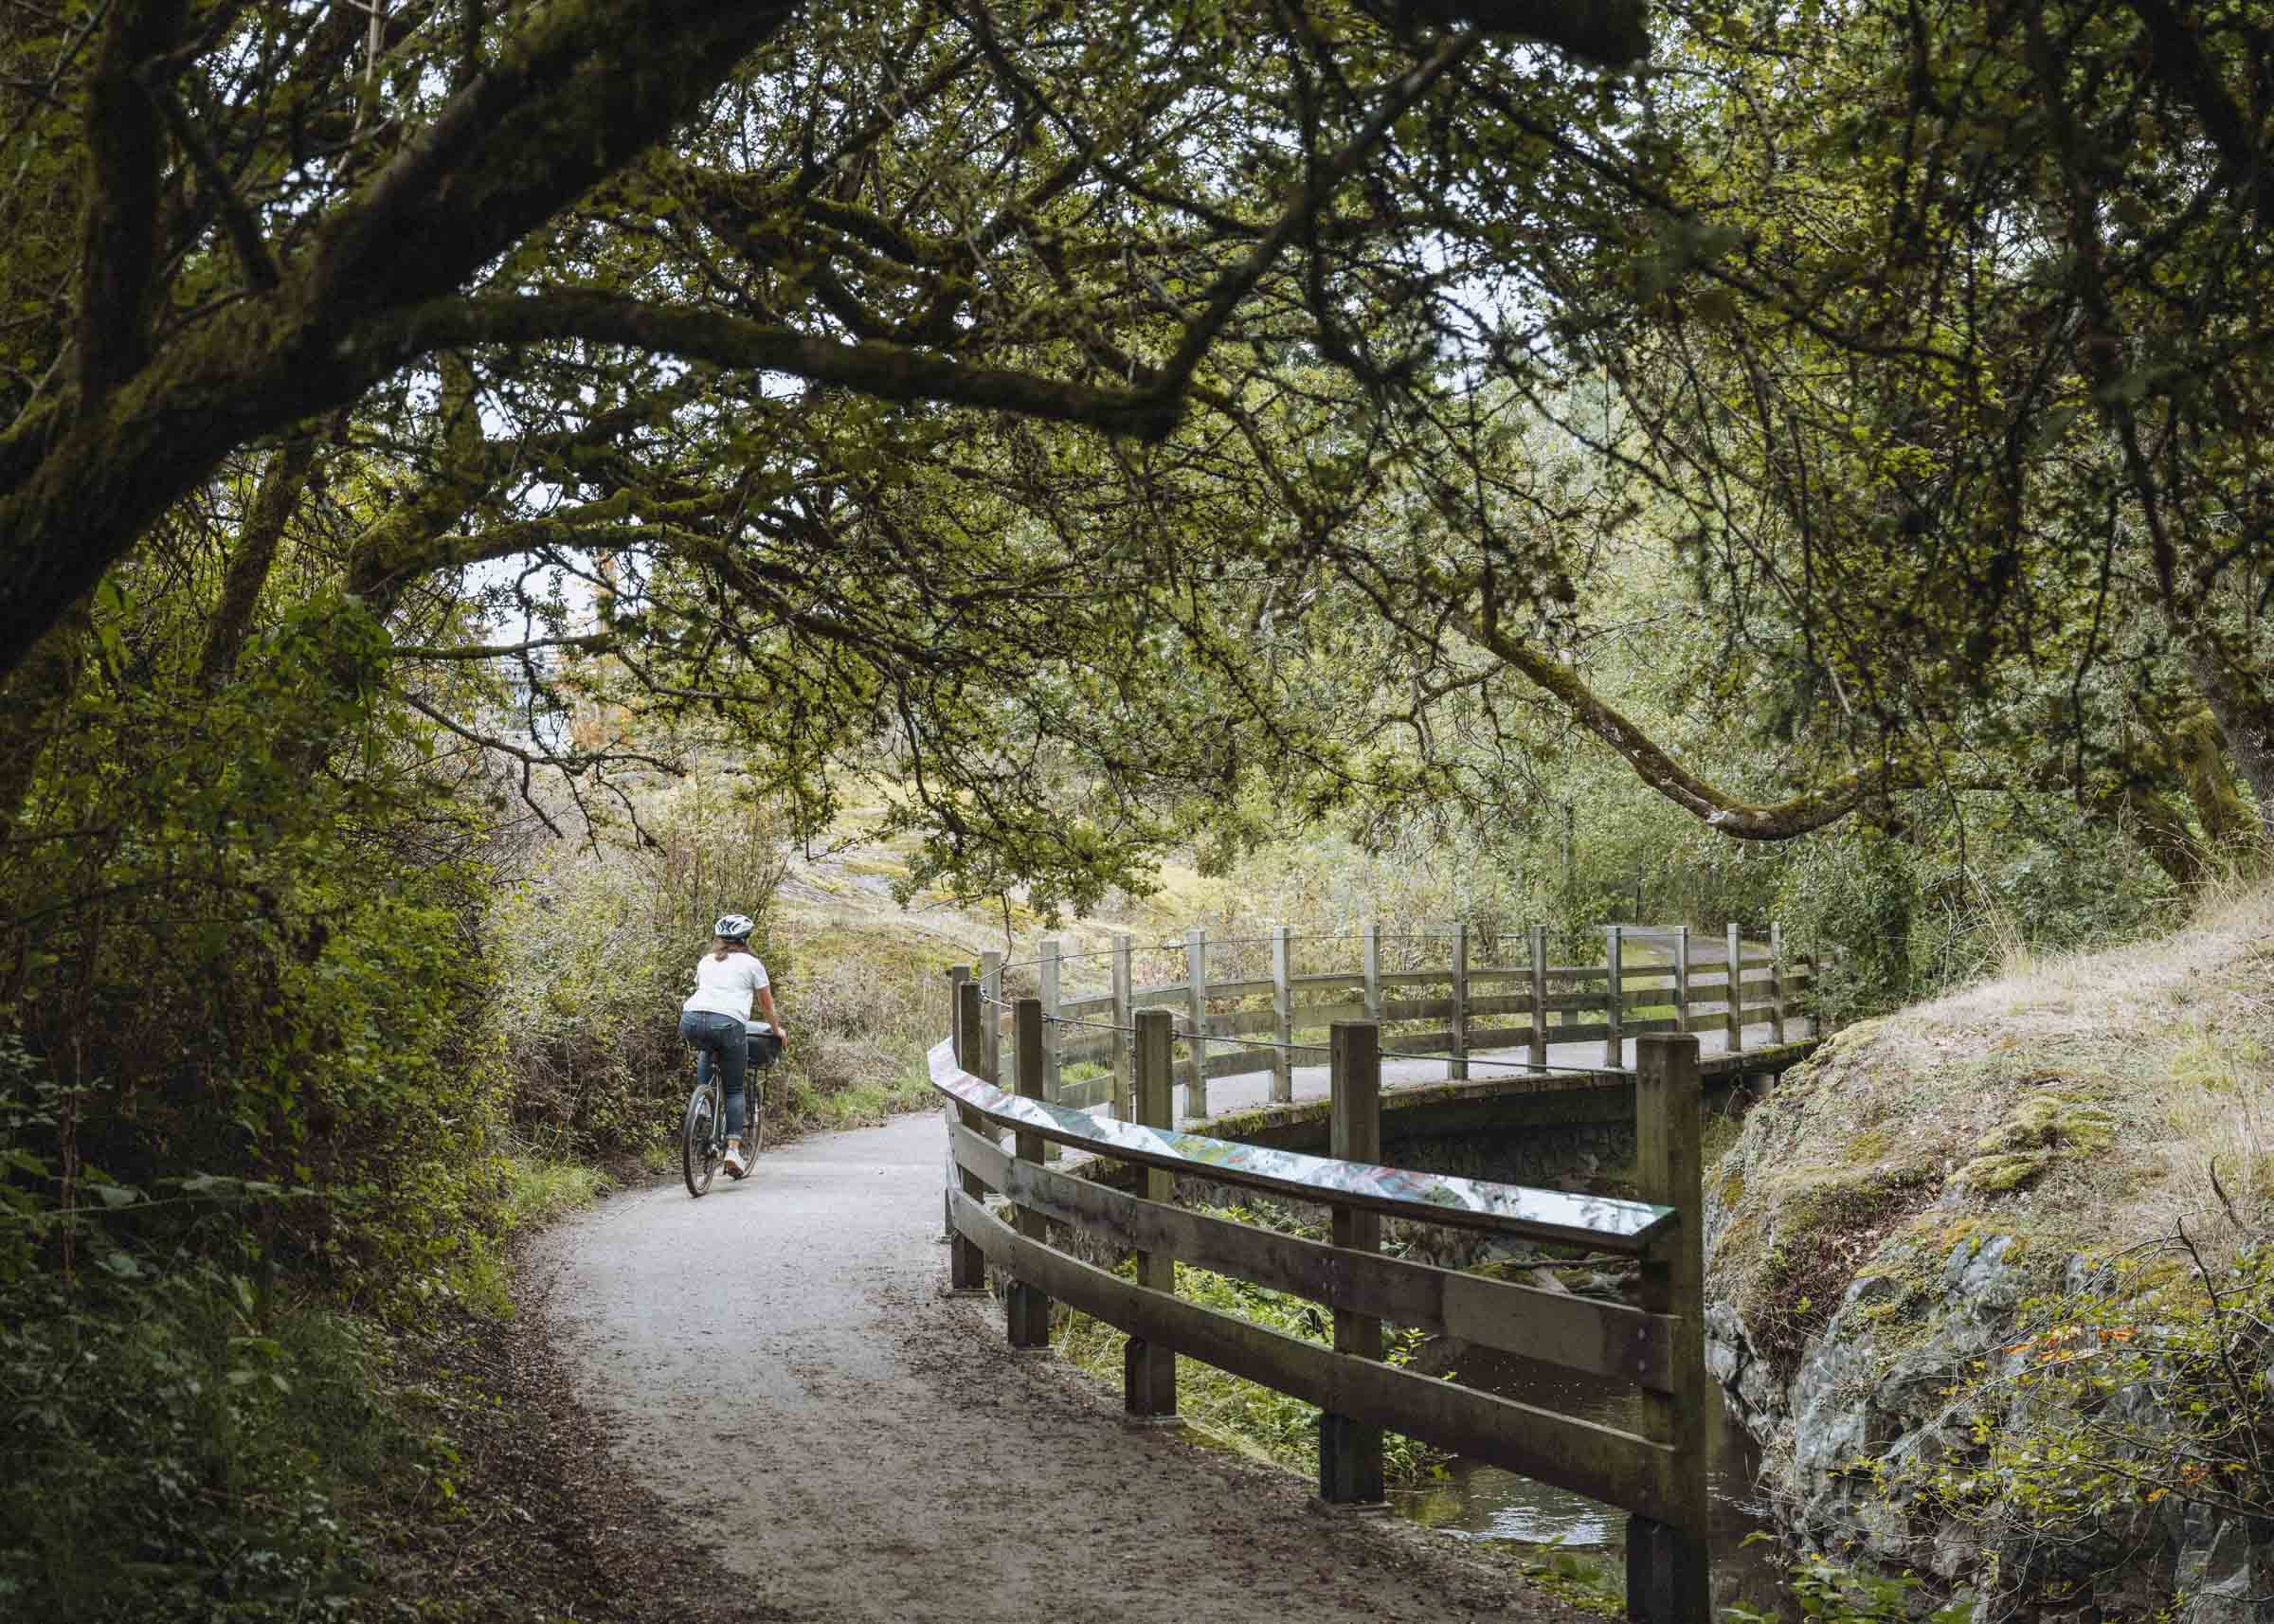 Riding along the Colquitz River bike trails